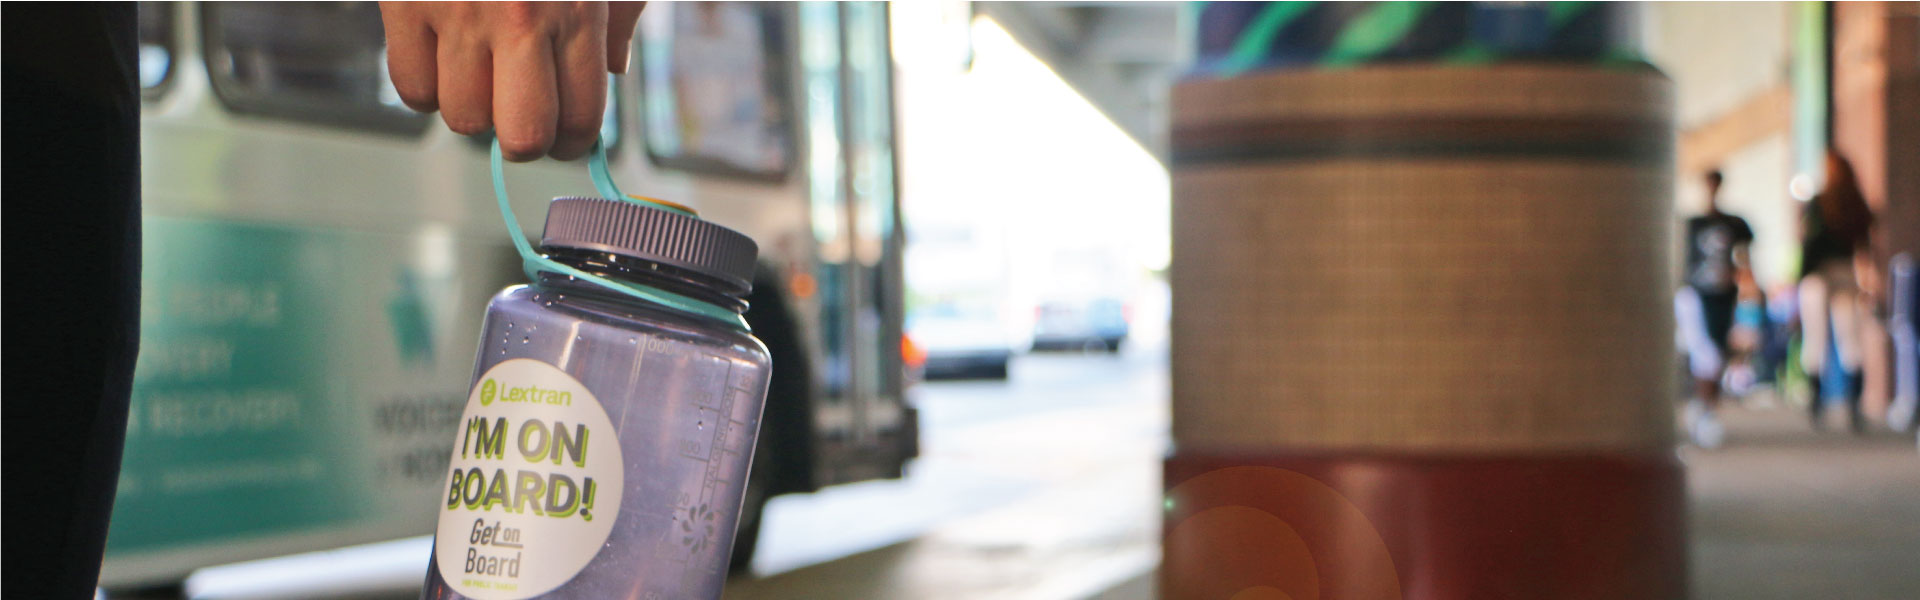 A person holding a water bottle with a Lextran sticker on it.